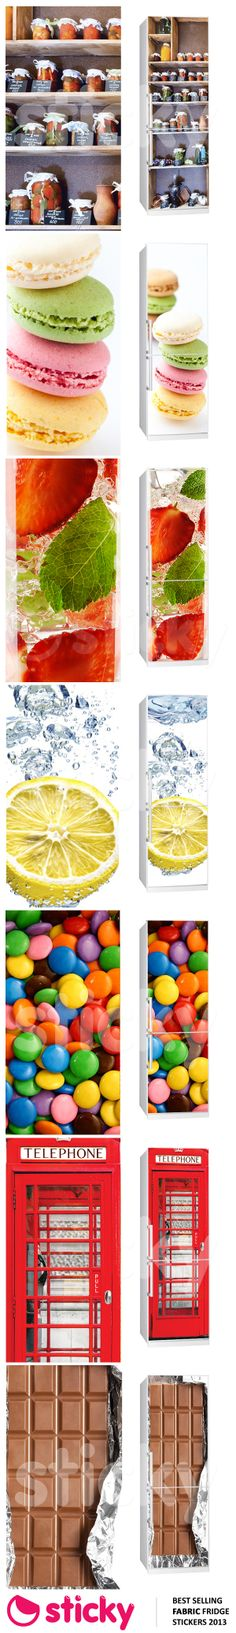 STICKY - Our most popular FABRIC FRIDGE stickers for 2013 based on sales!